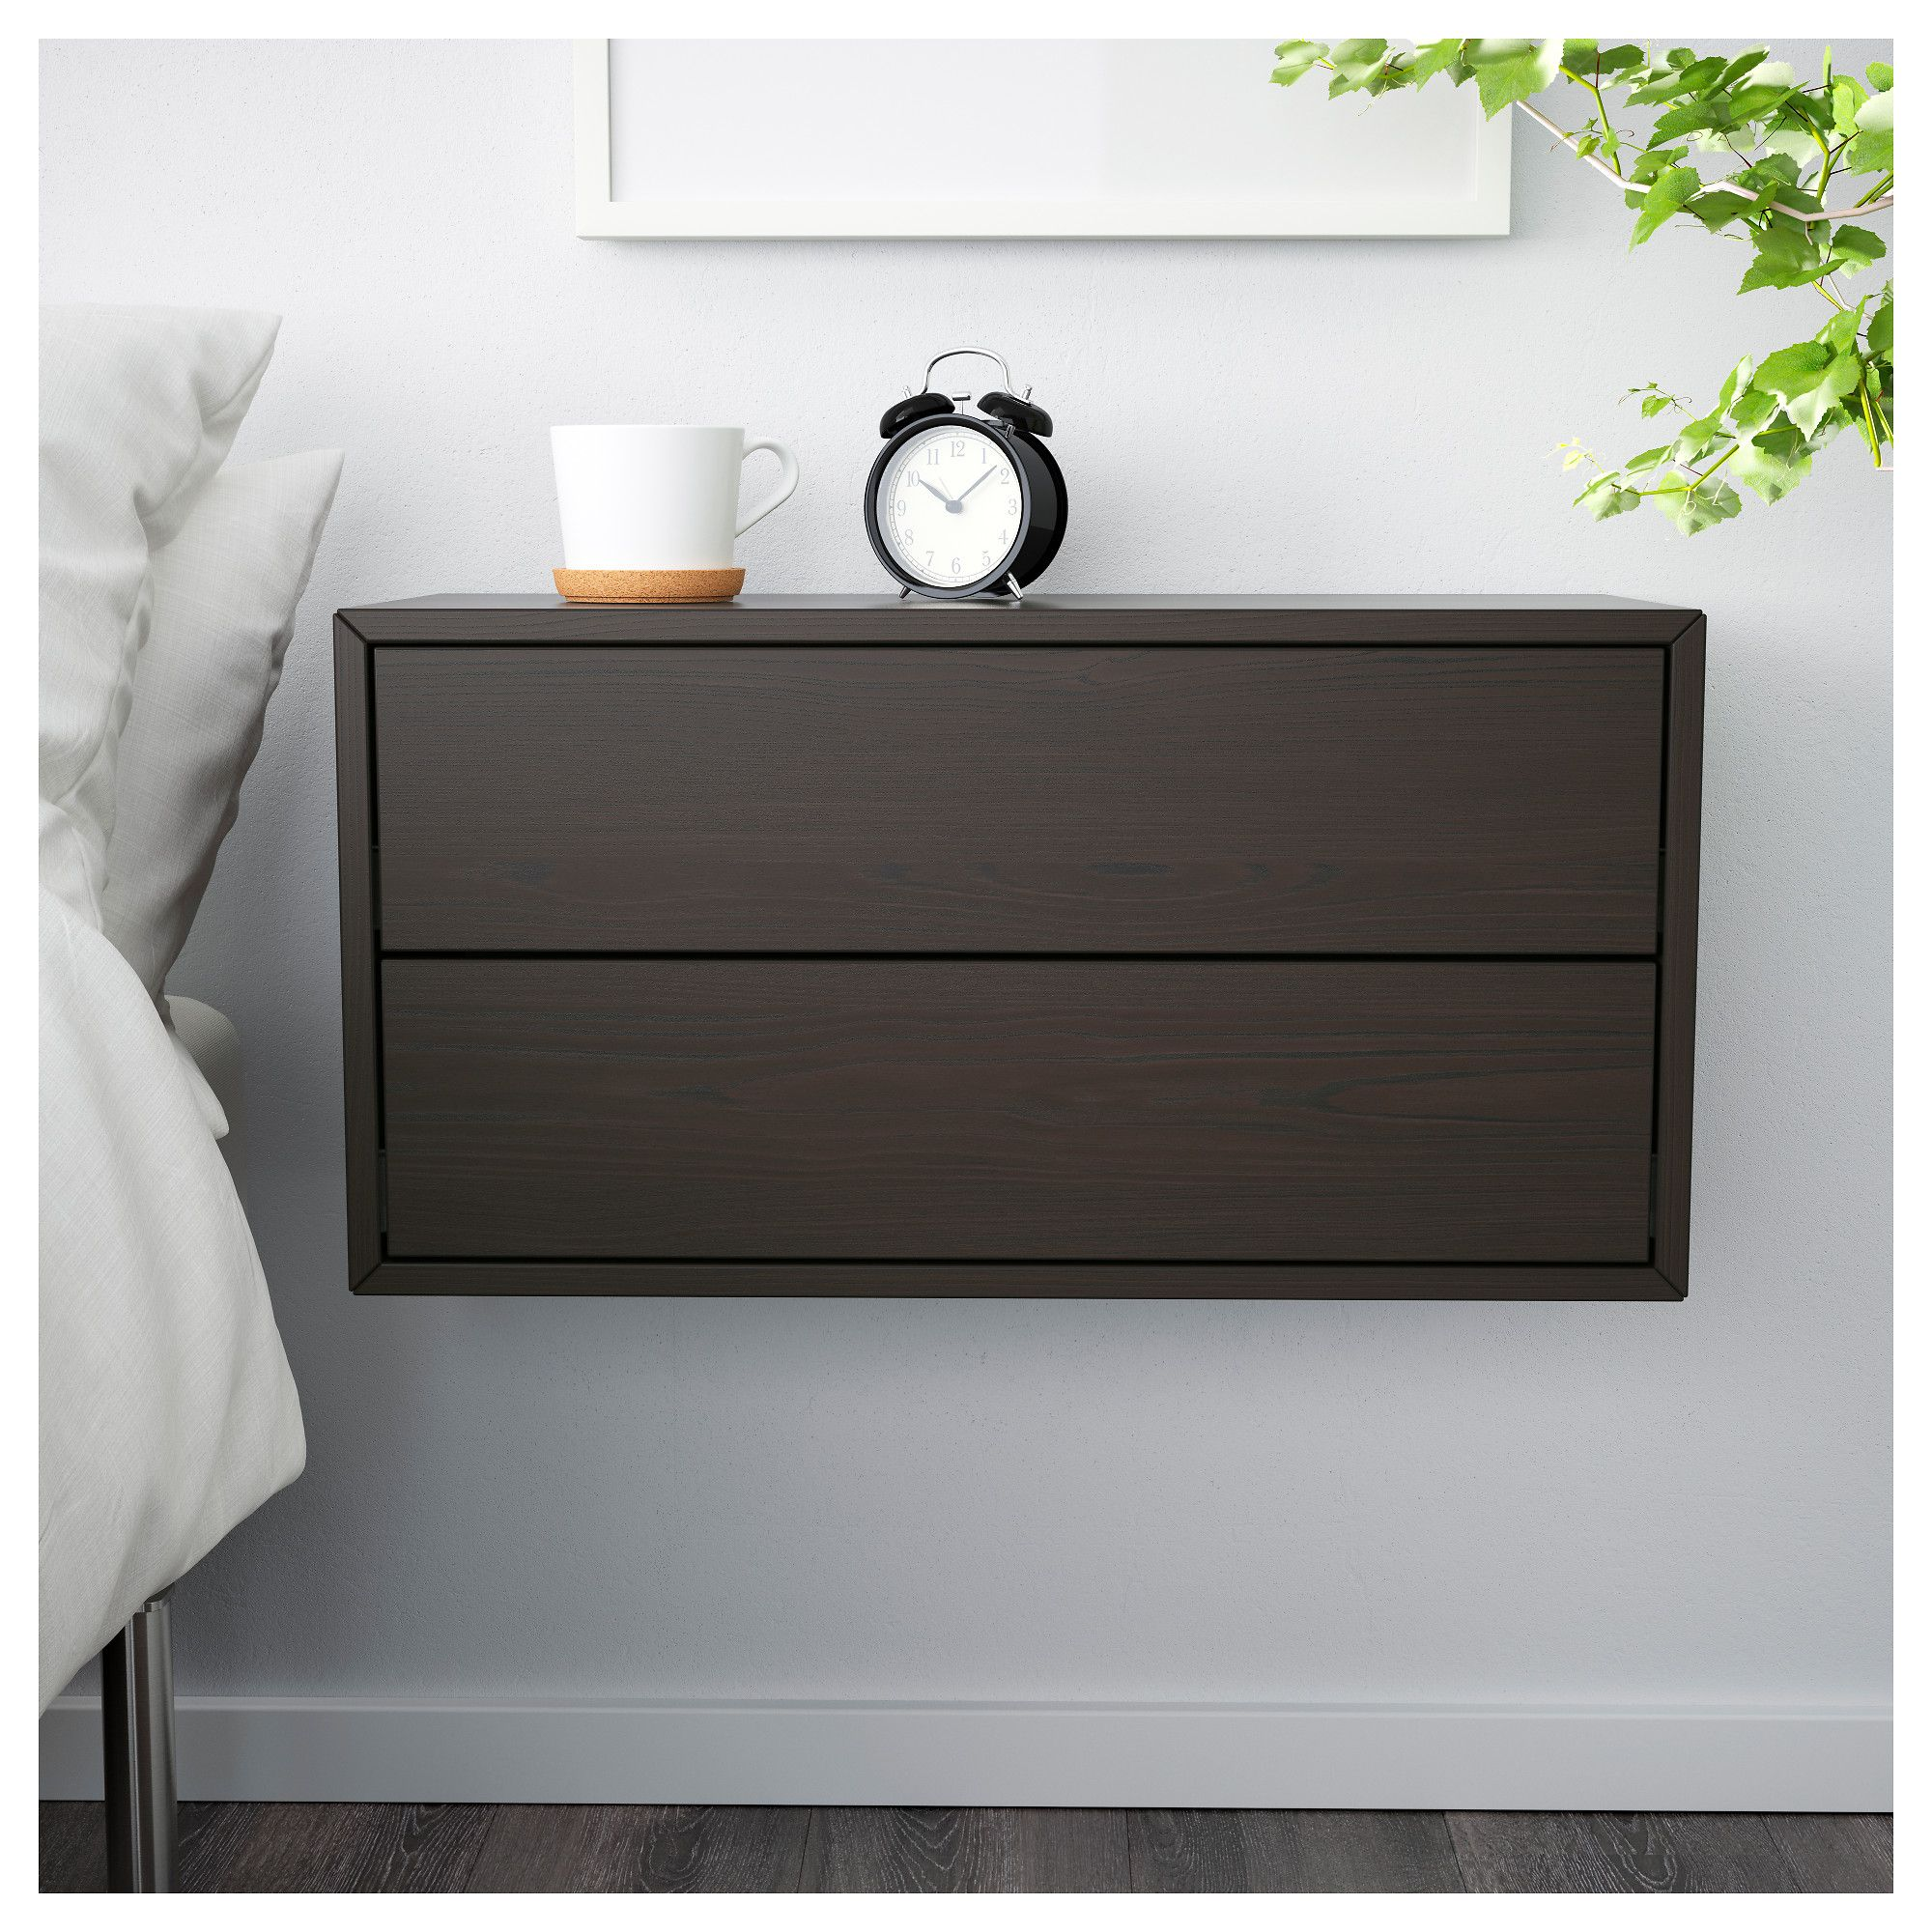 IKEA VALJE Wall Cabinet With 2 Drawers